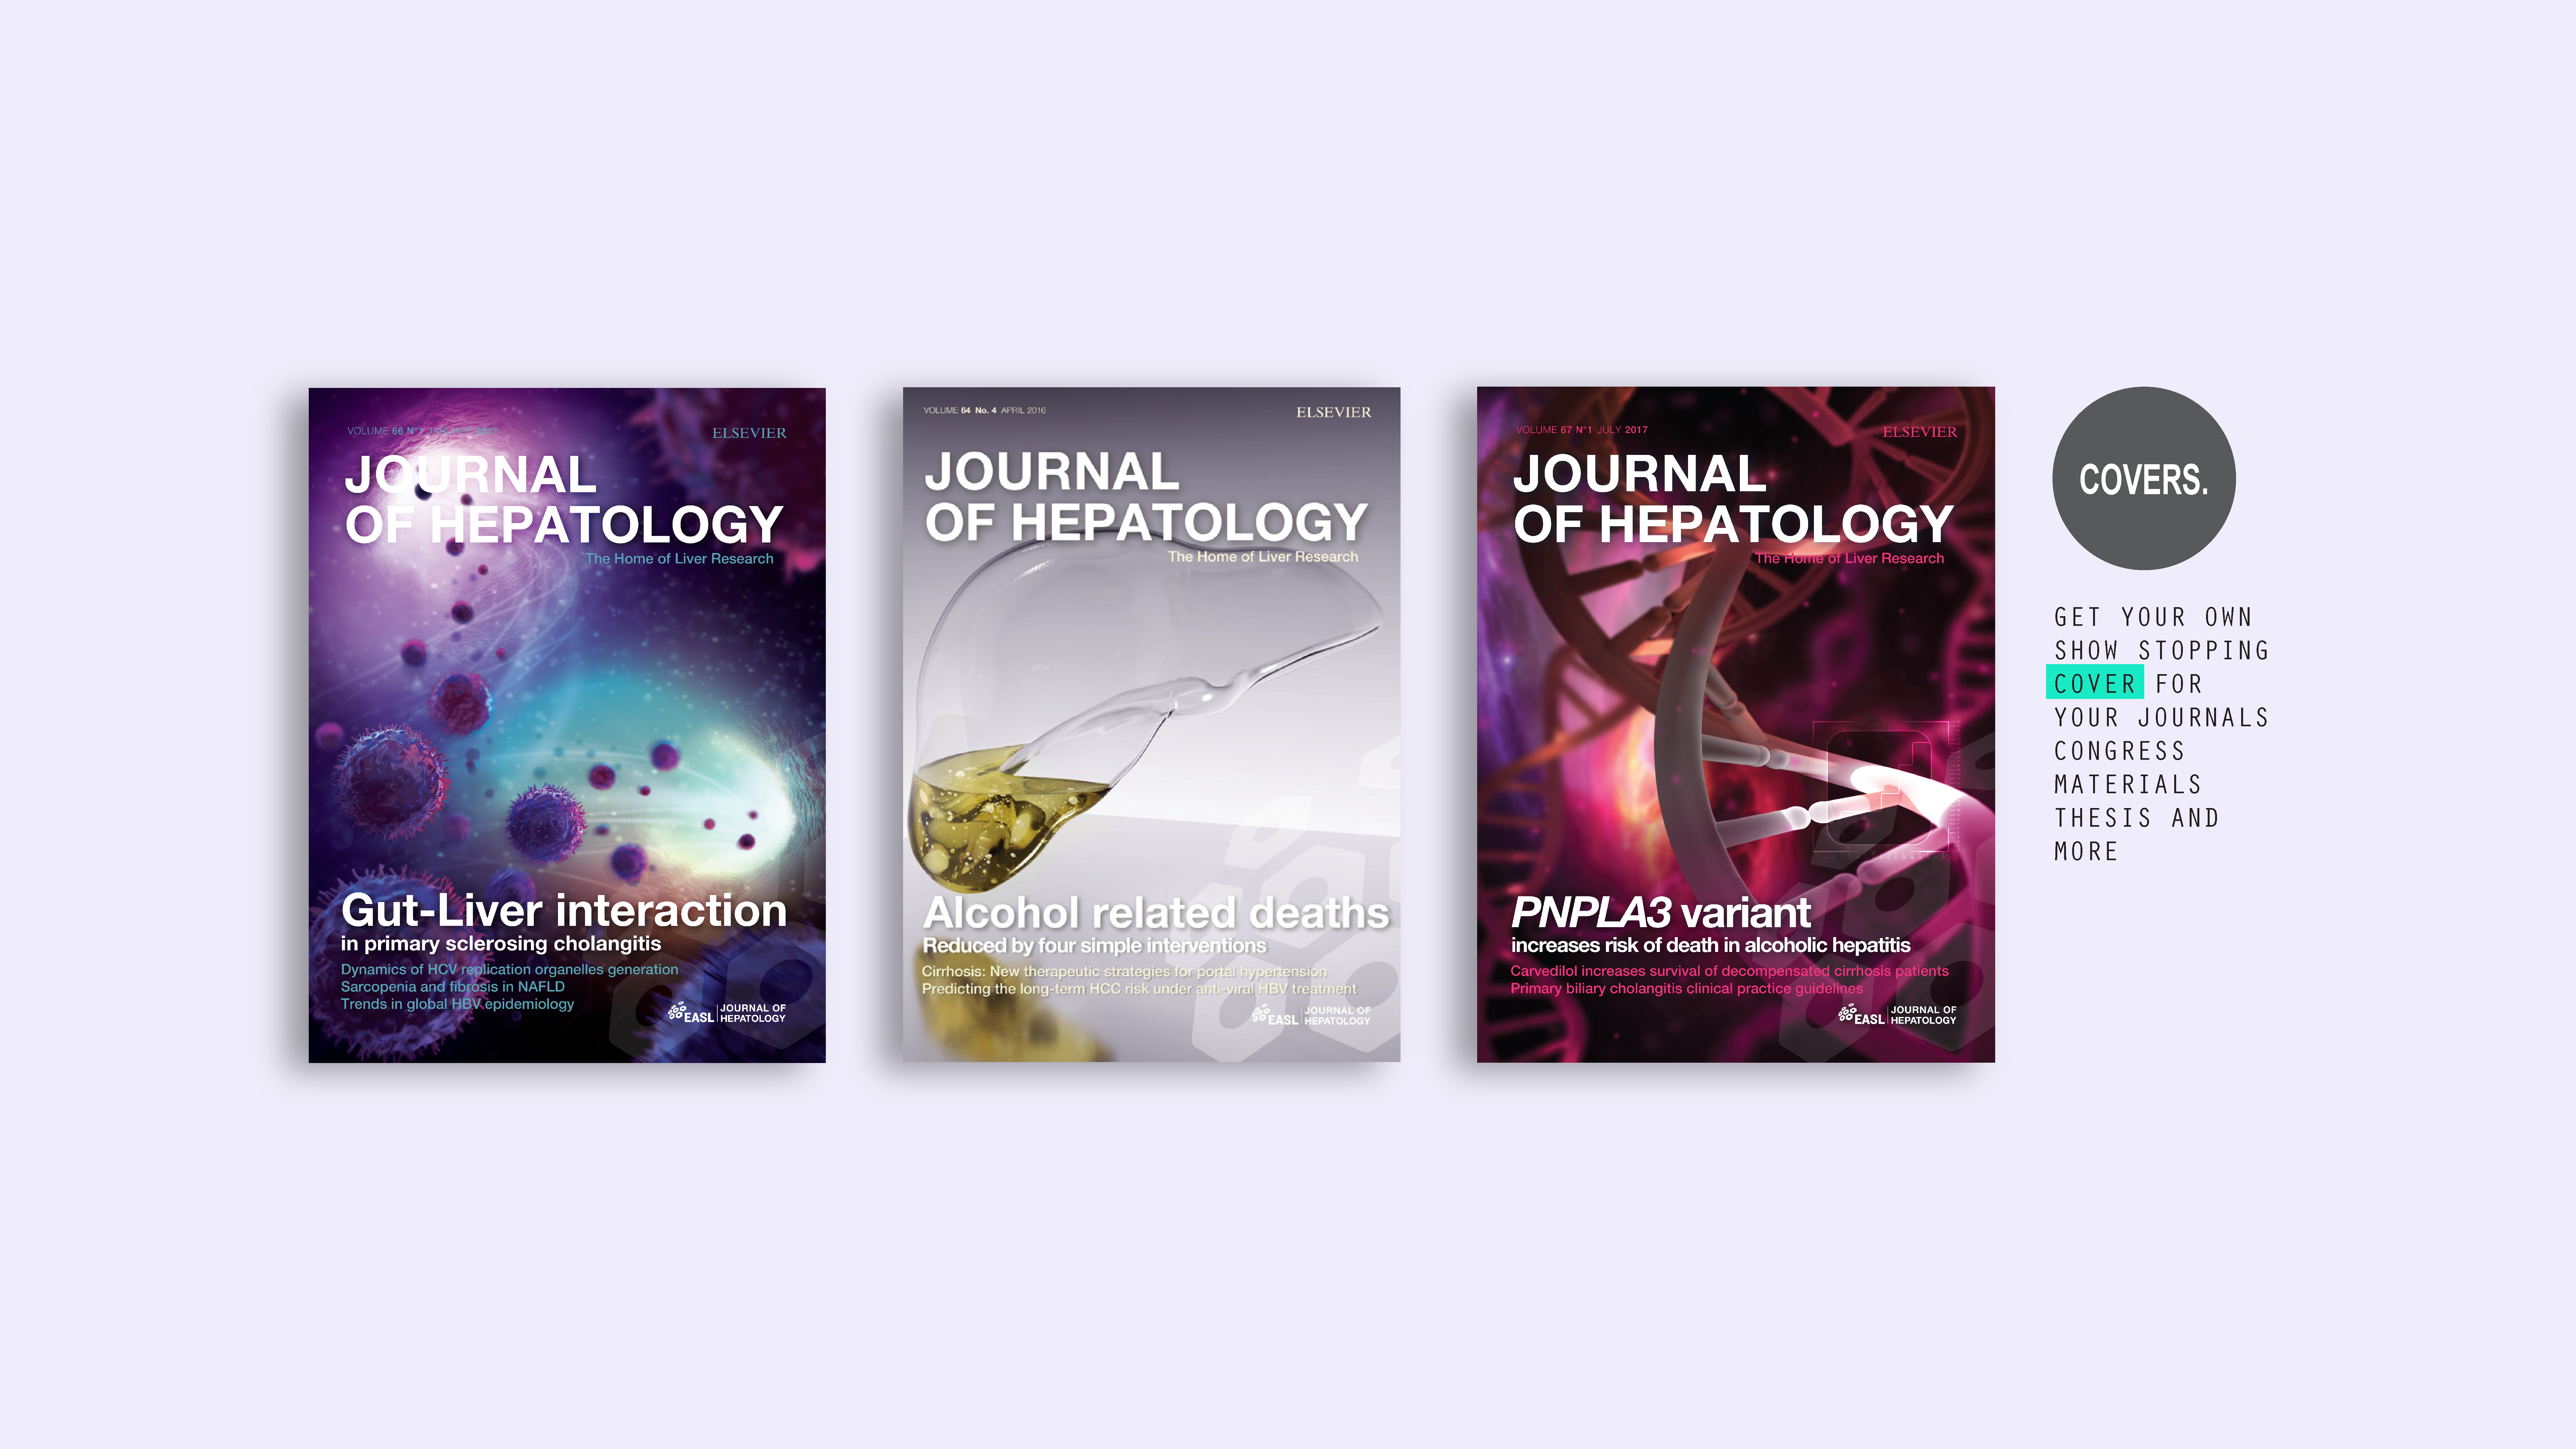 COVERS BANNER